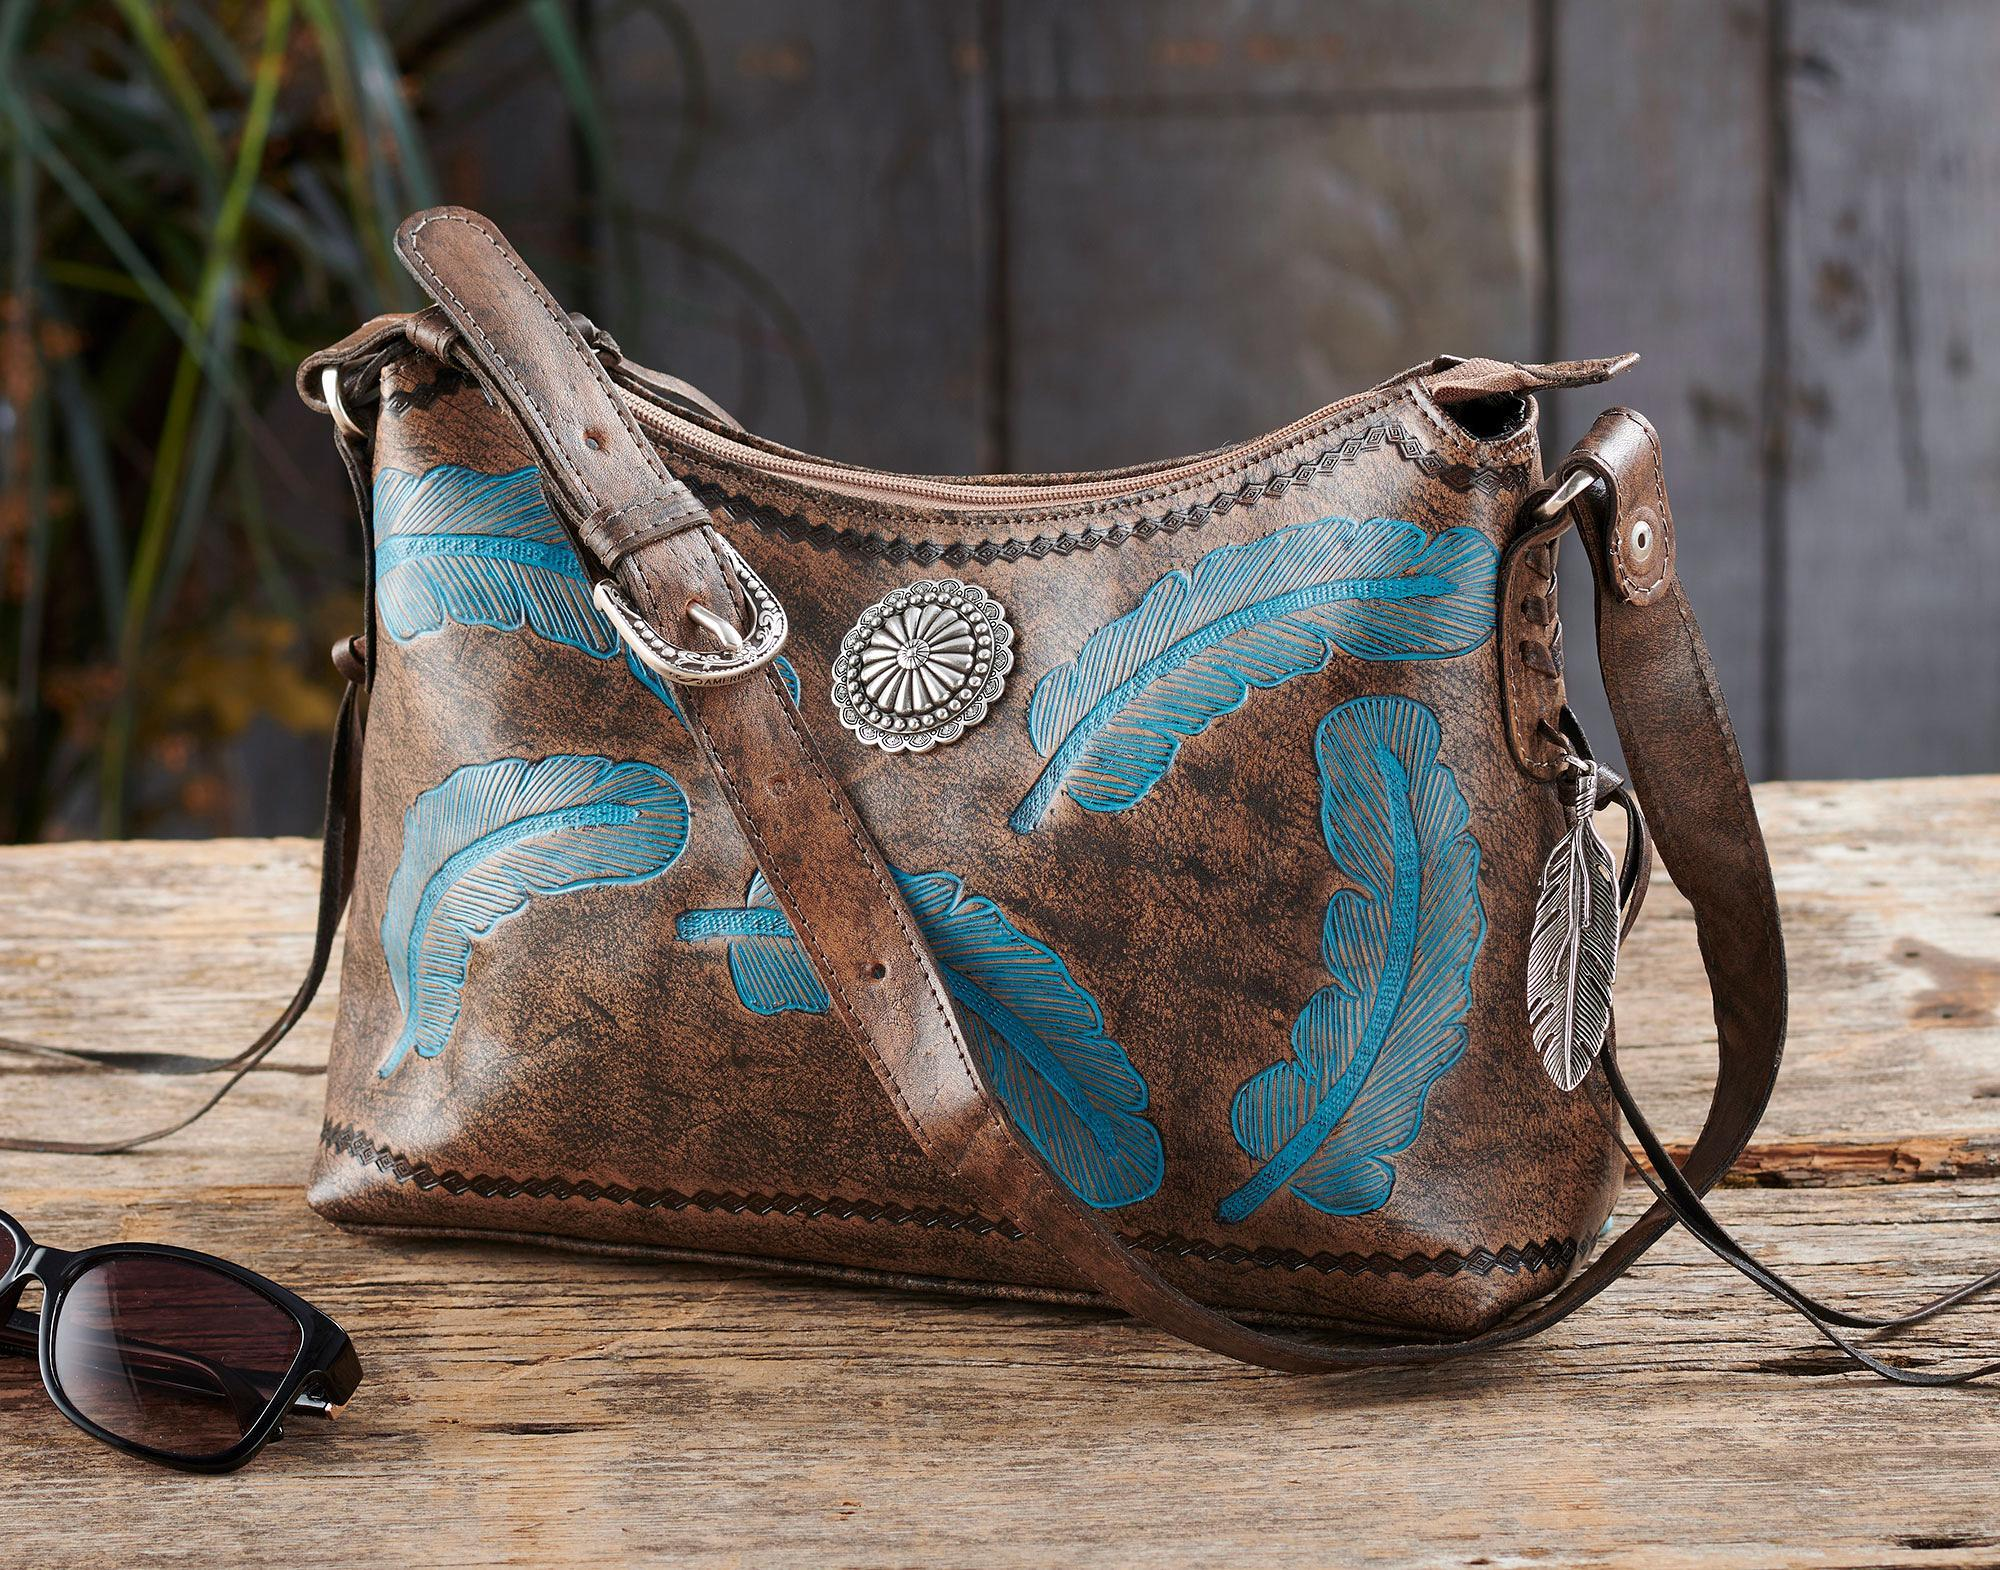 Charcoal Leather with Turquoise Feathers Handbag